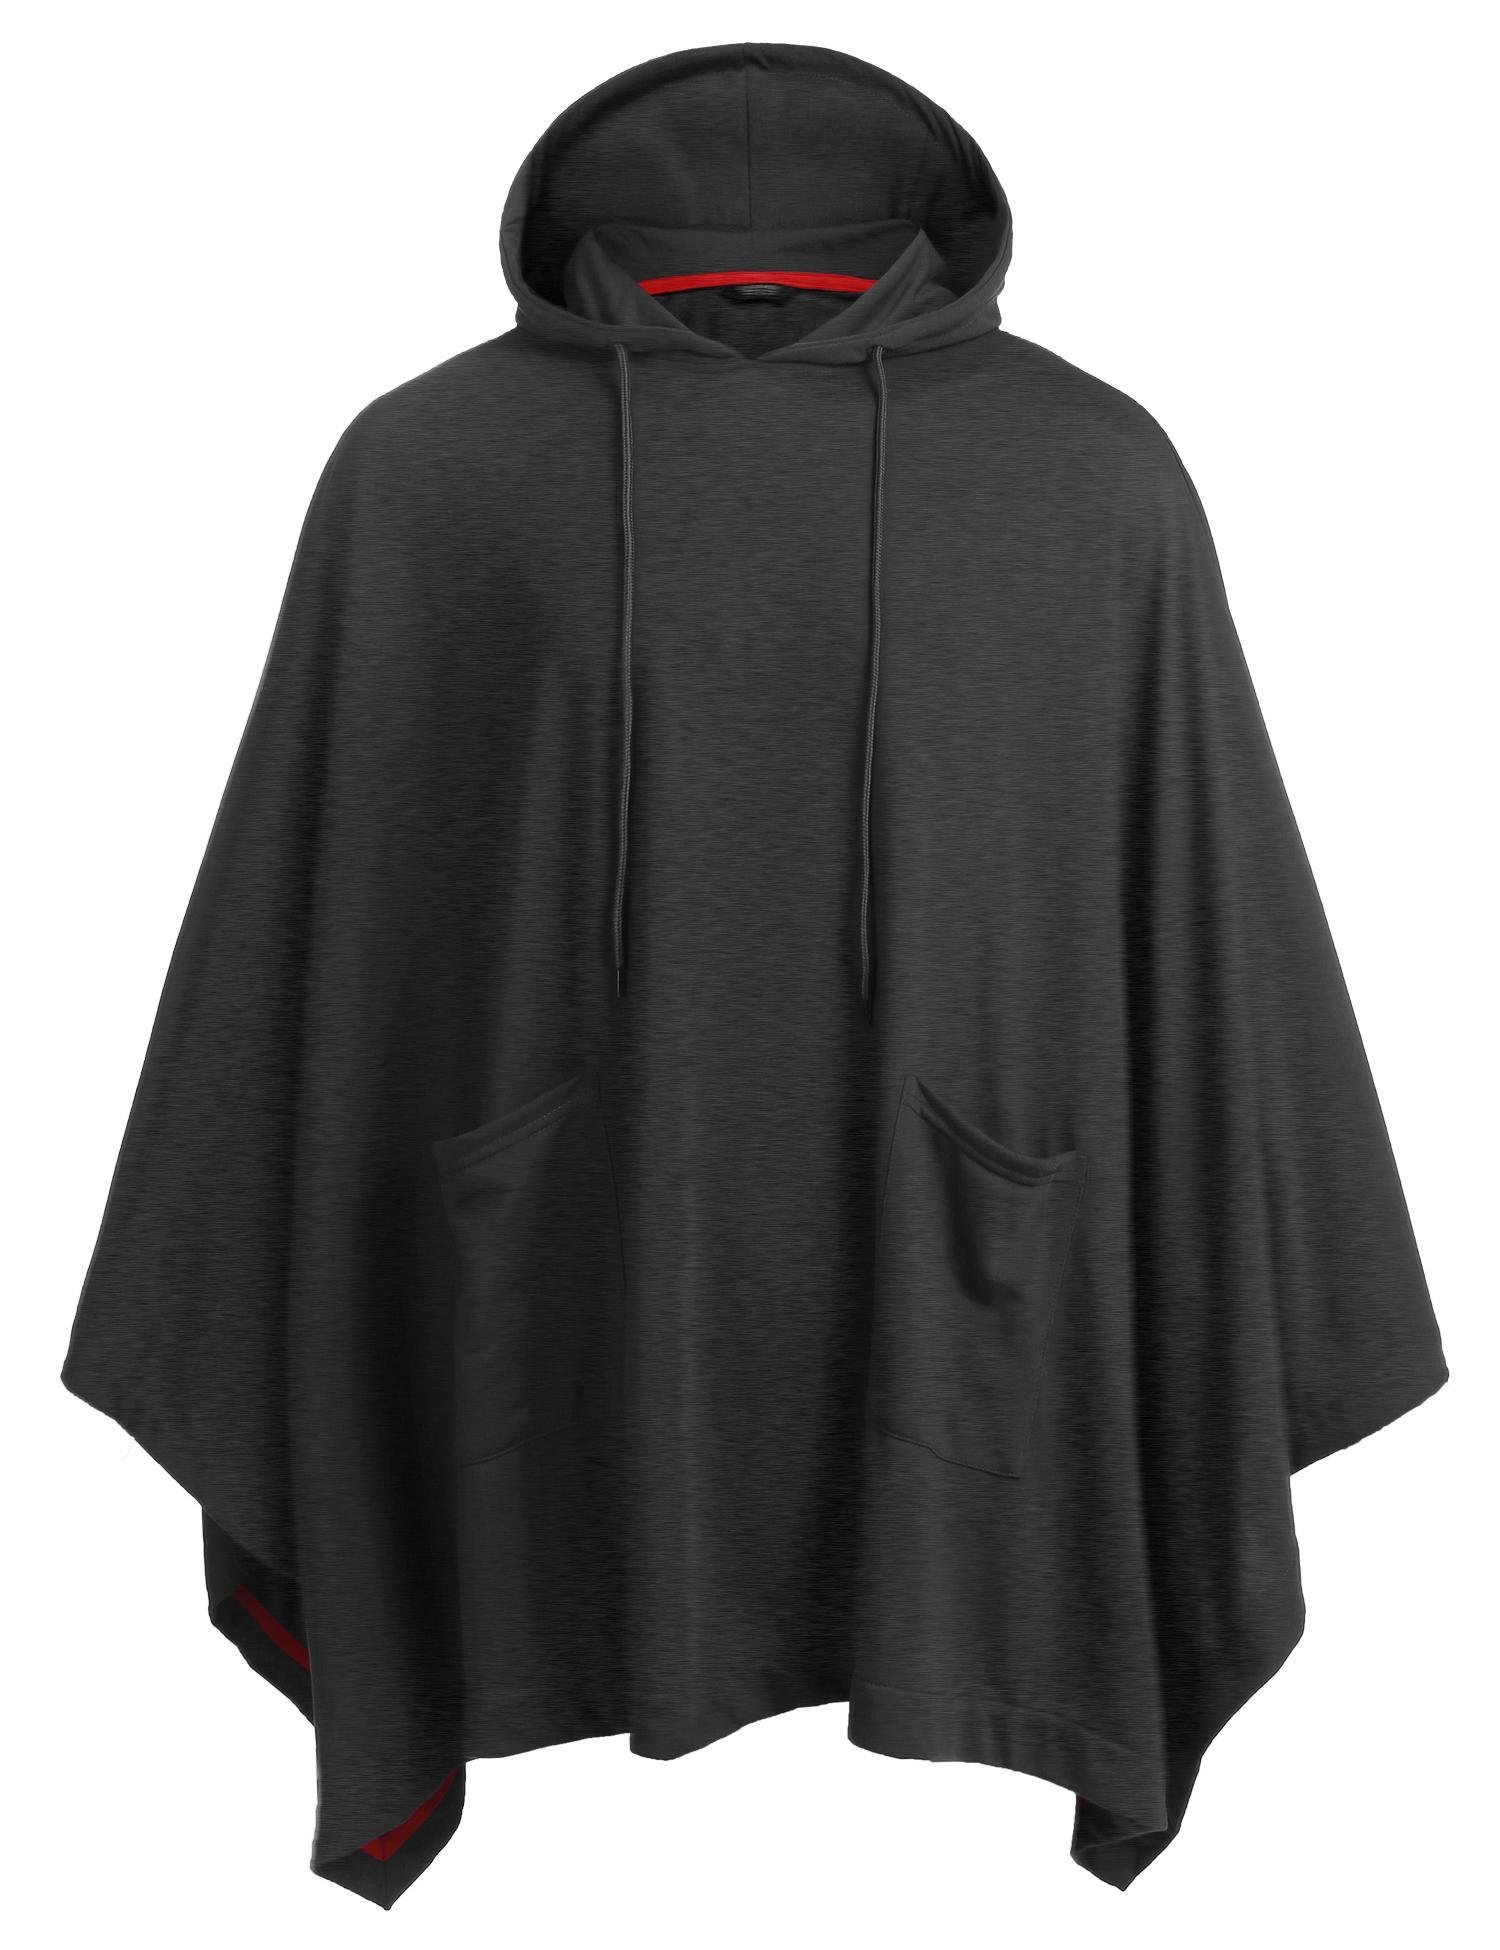 COOFANDY Unisex Casual Hooded Cloak Poncho Cape Coat With Pocket,Dark Grey,X-Large